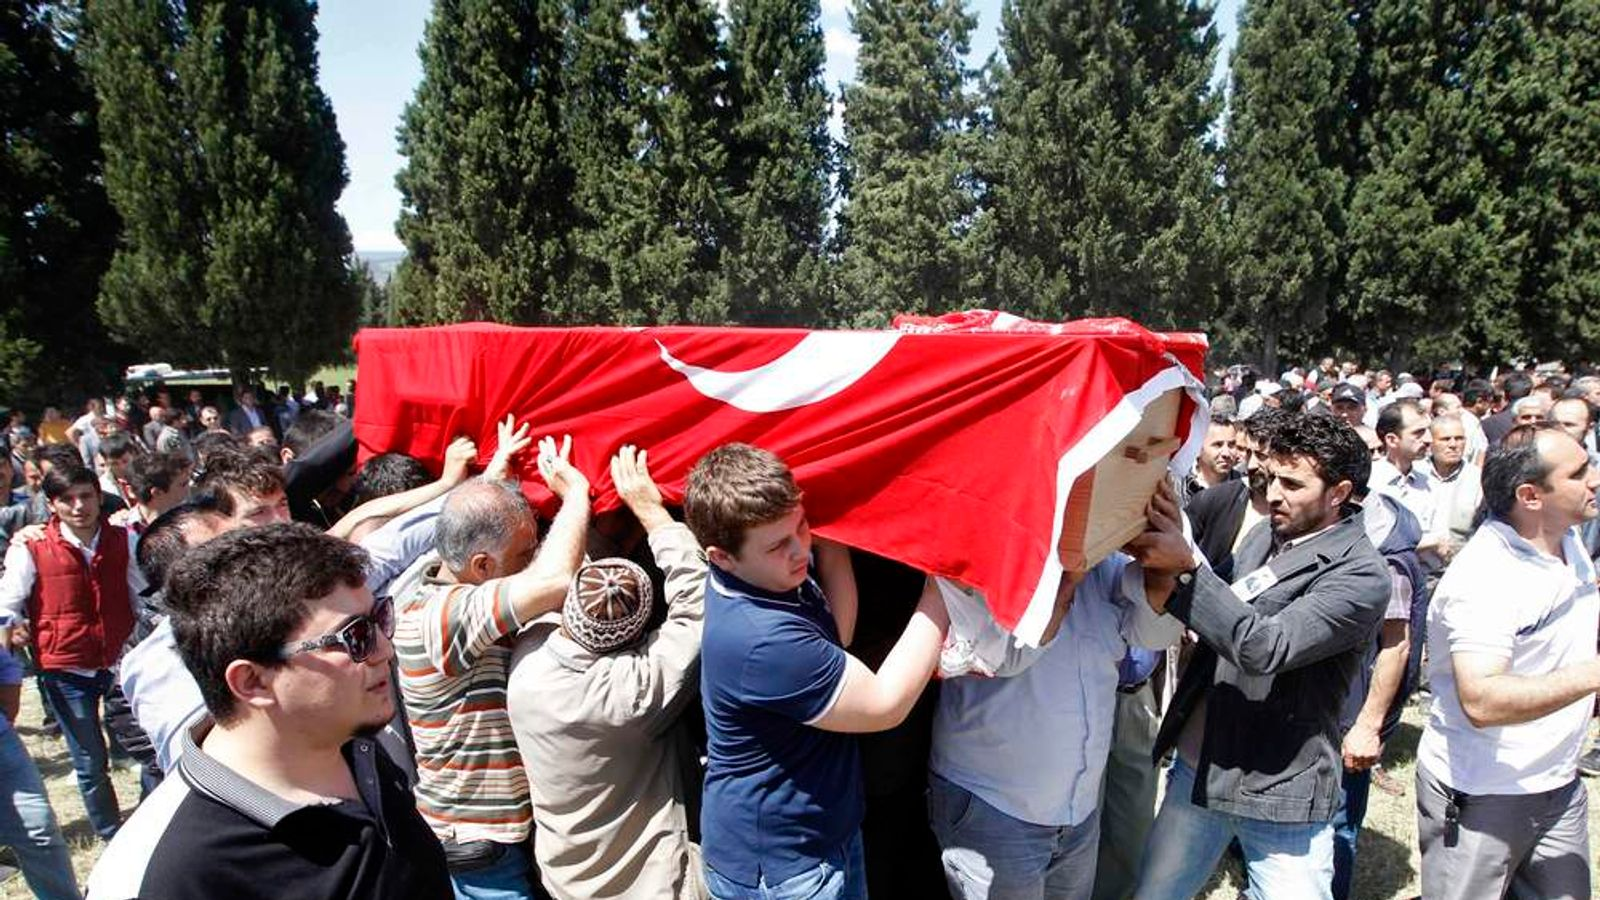 People carry the coffin of a miner who died in a fire at a coal mine, draped with a Turkish flag, during his funeral at a cemetery in Soma, a district in Turkey's western province of Manisa